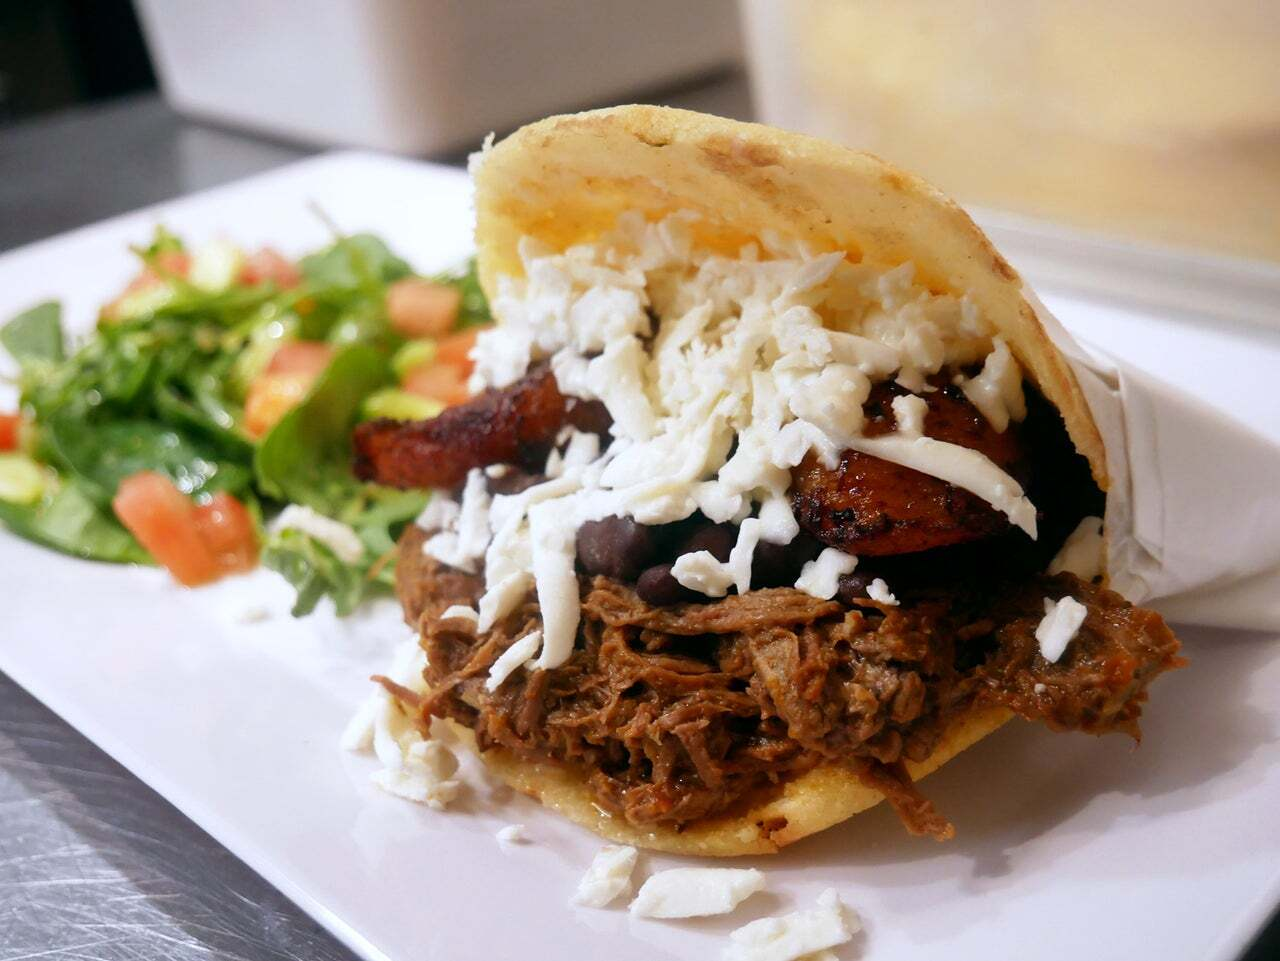 Pabellón arepa is filled with shredded cheese, sweet plantains, black beans and crumbled cheese | Courtesy of Cariaco